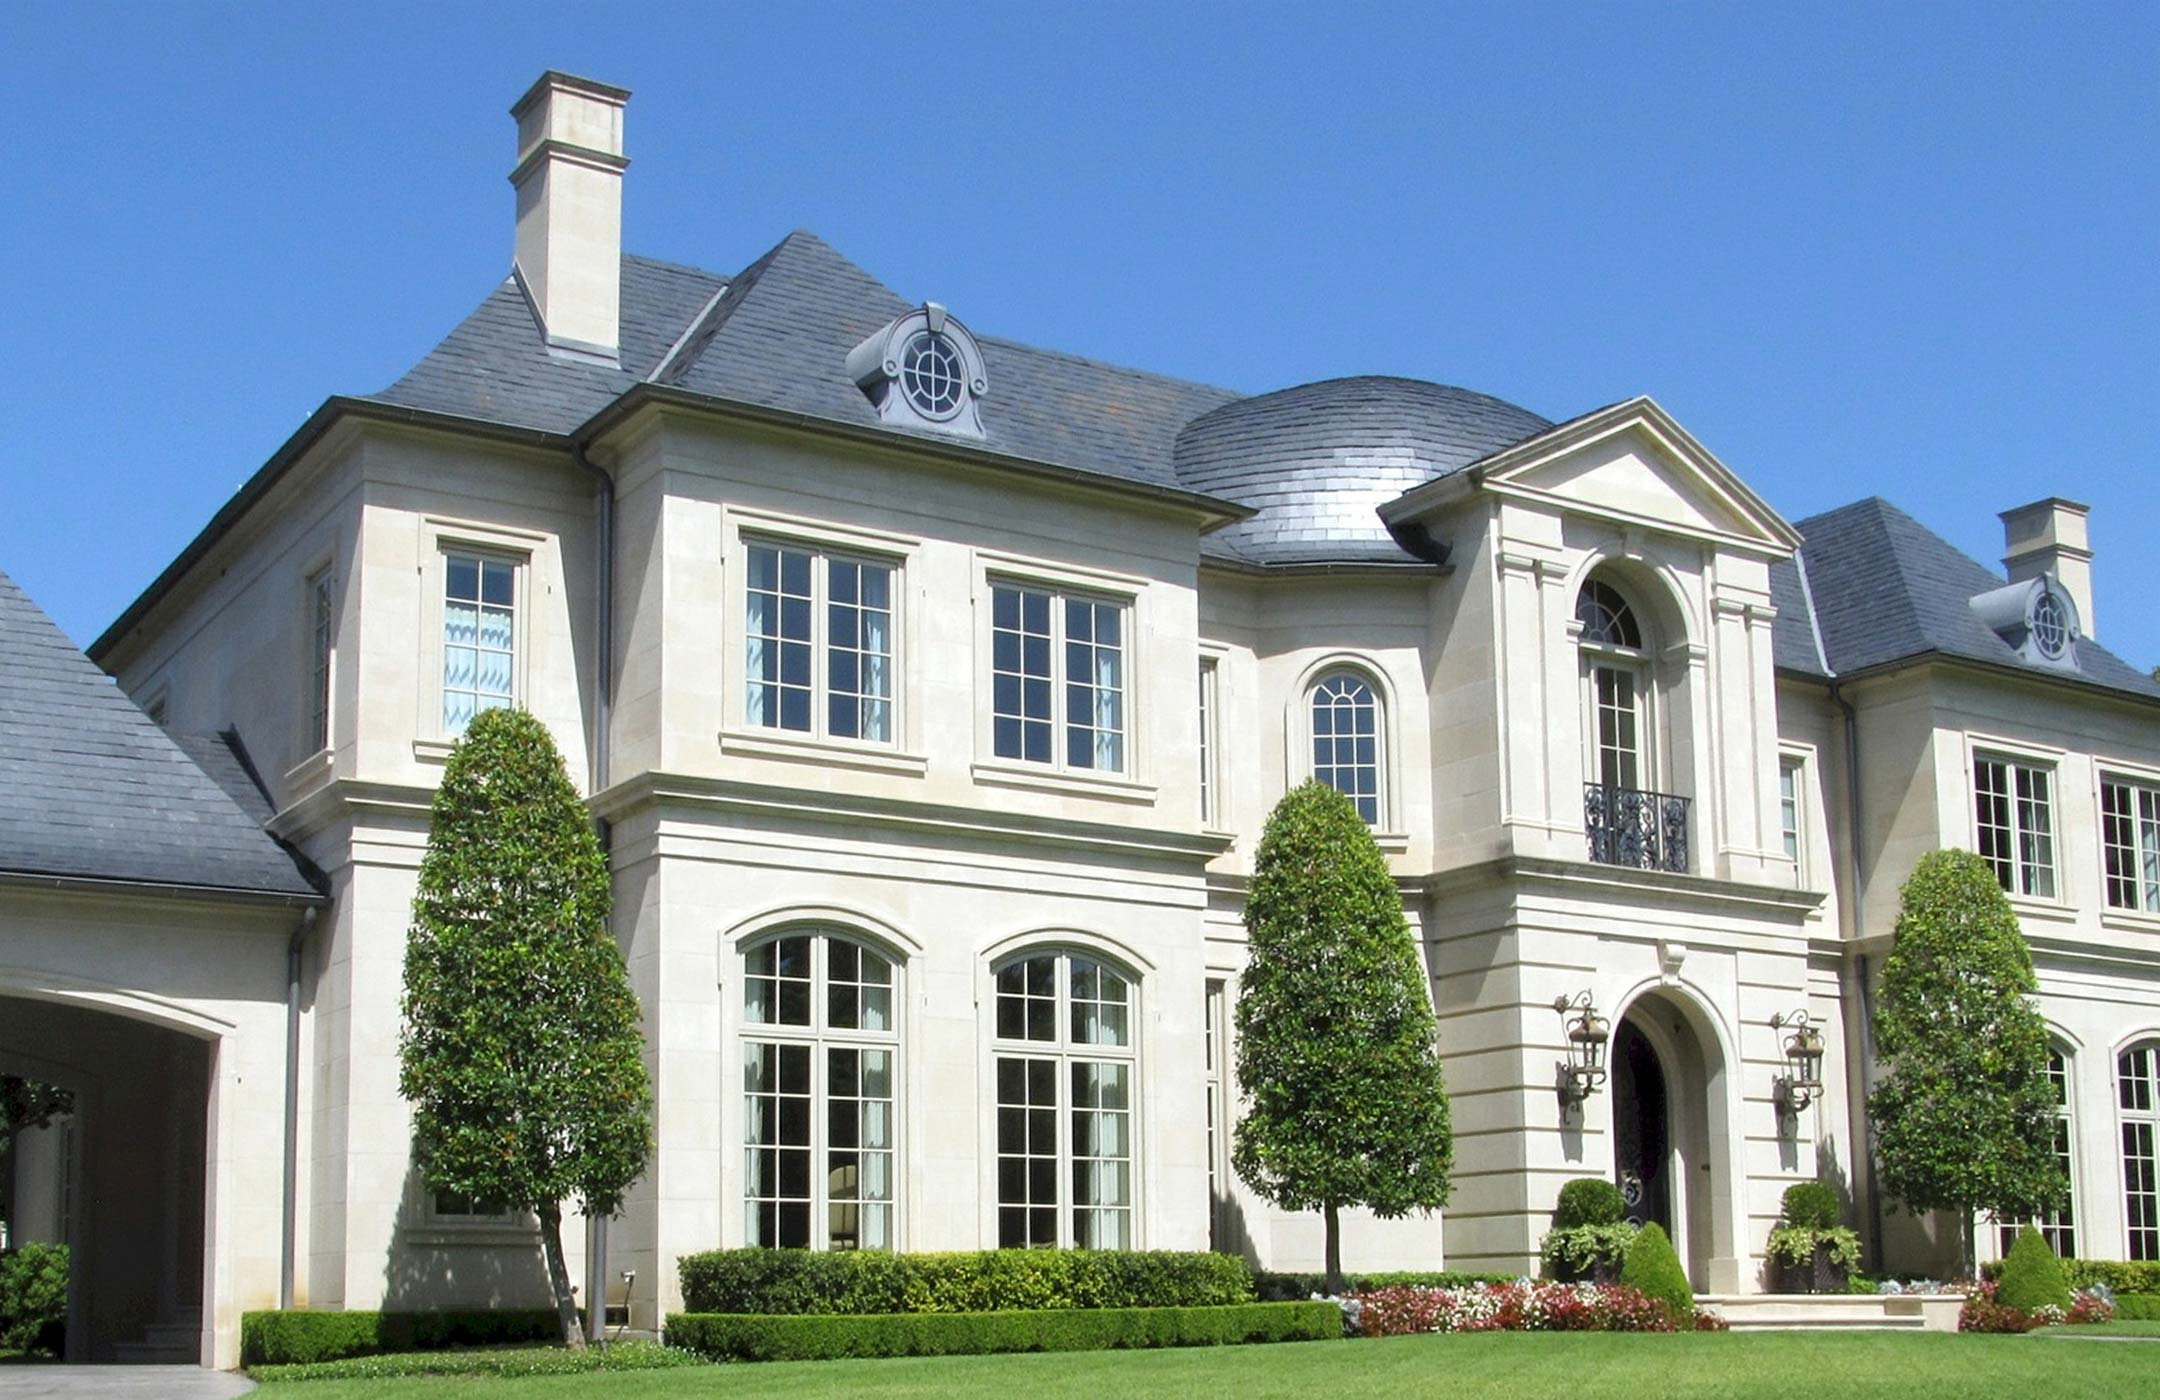 LUXURY OAKVILLE HOUSES FOR SALE